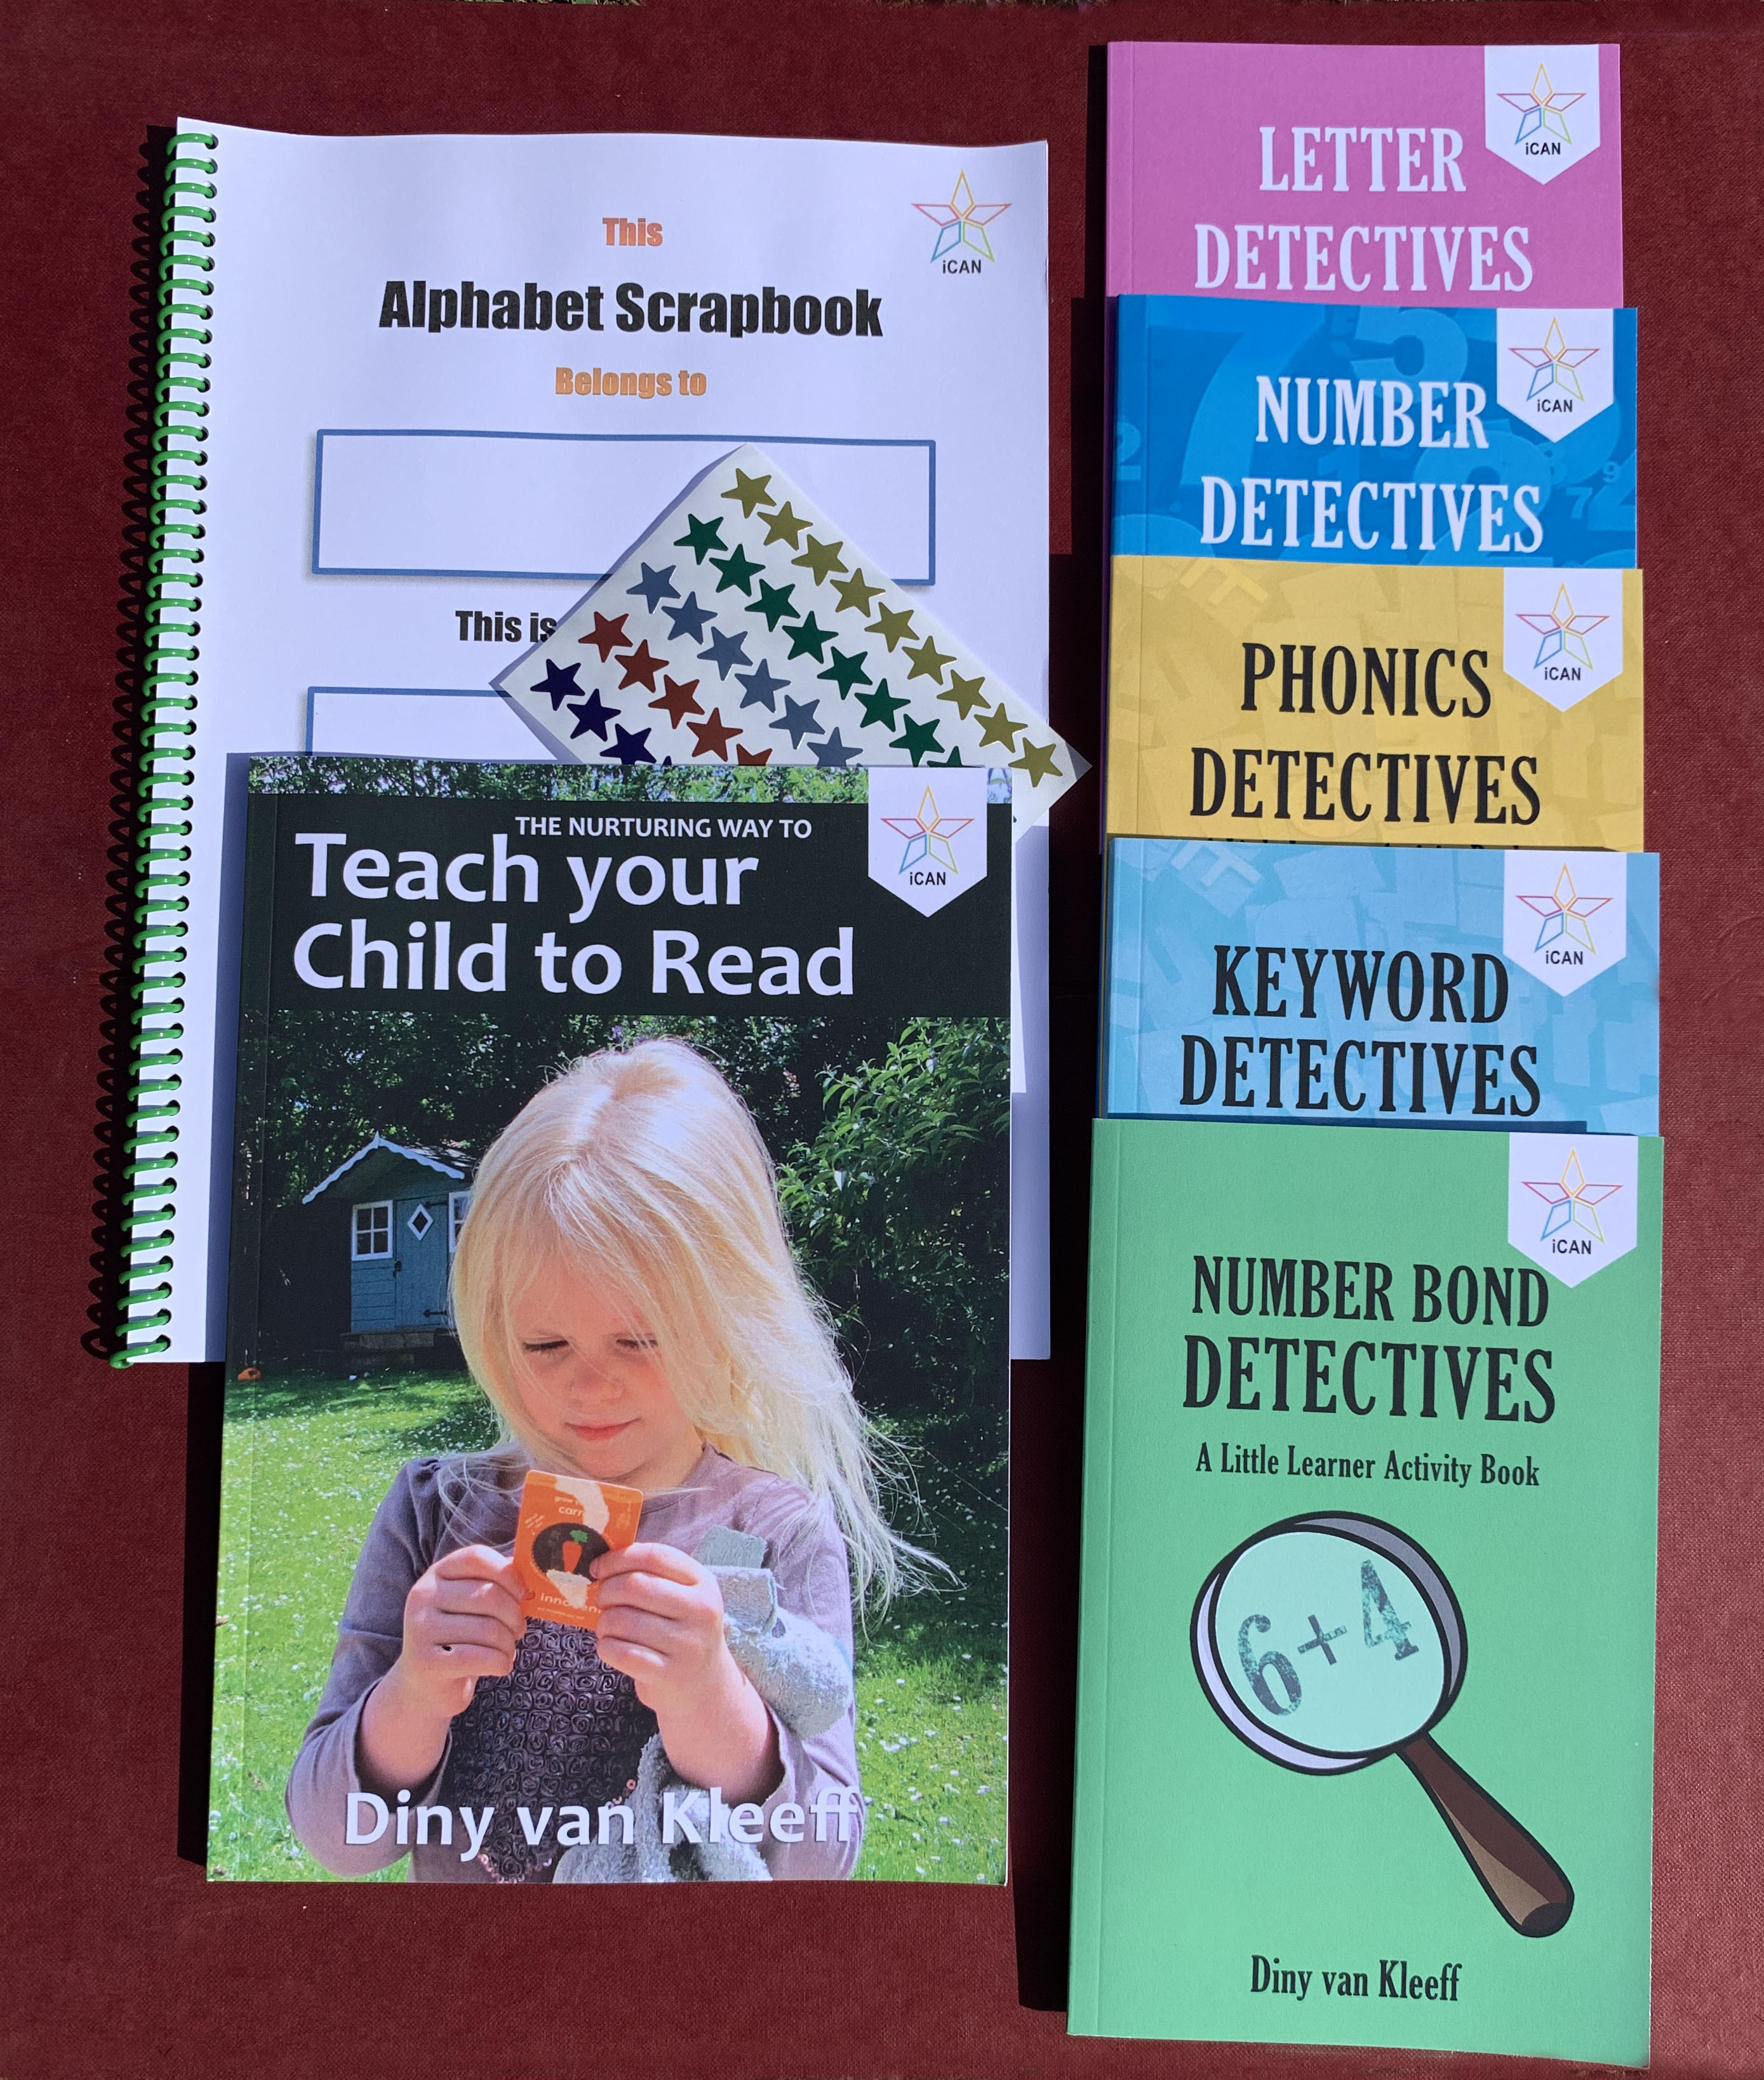 iCAN First Years Home-Learning Pack £36 + £3 p&p